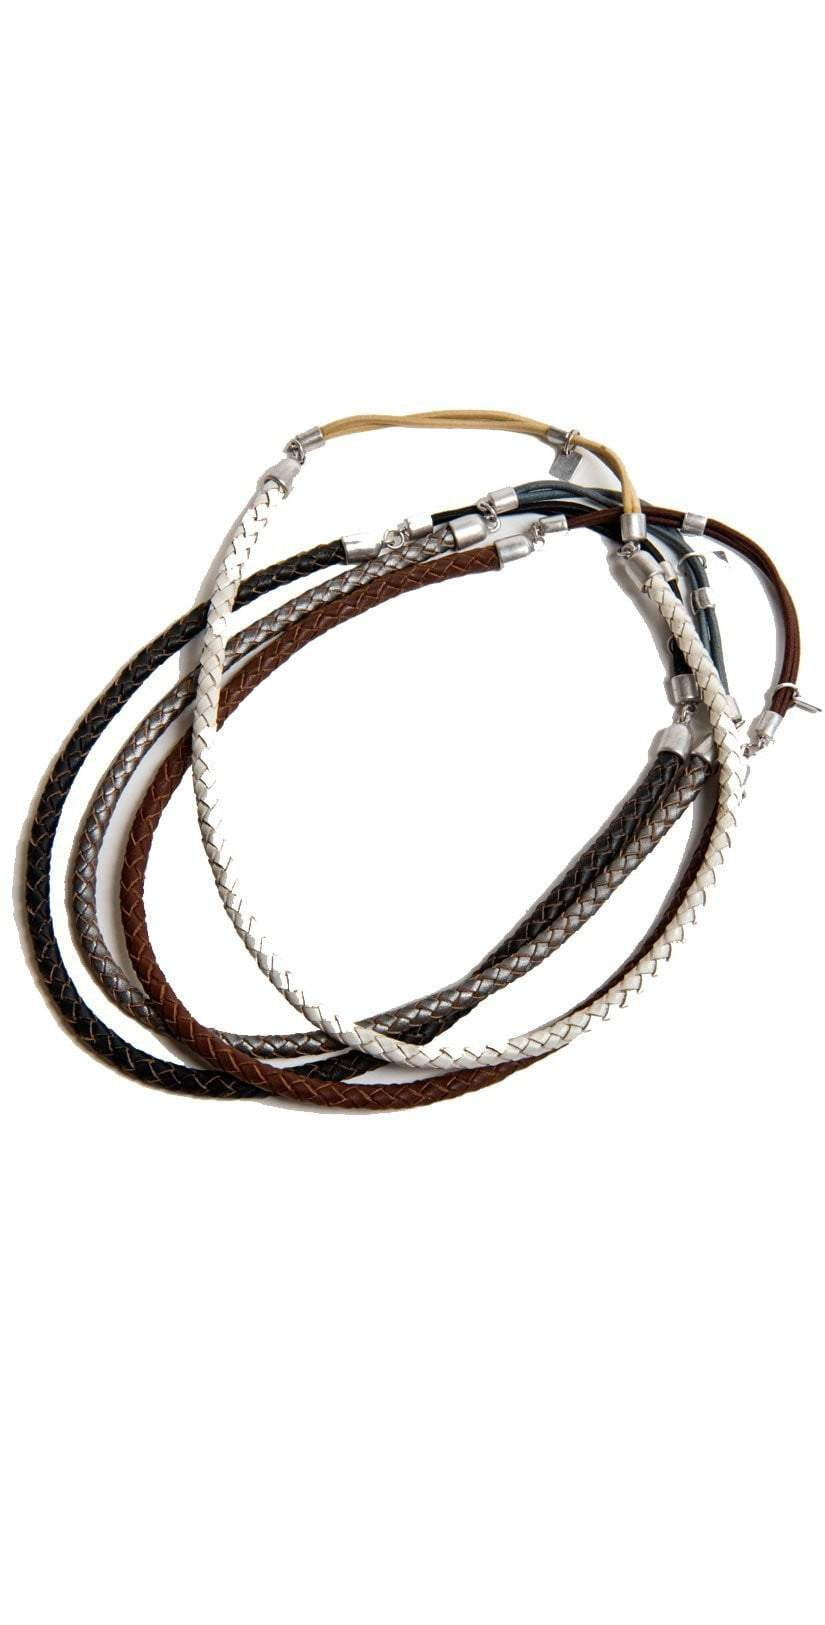 Ficcare Single Braided Leather Headband in Brown B978: